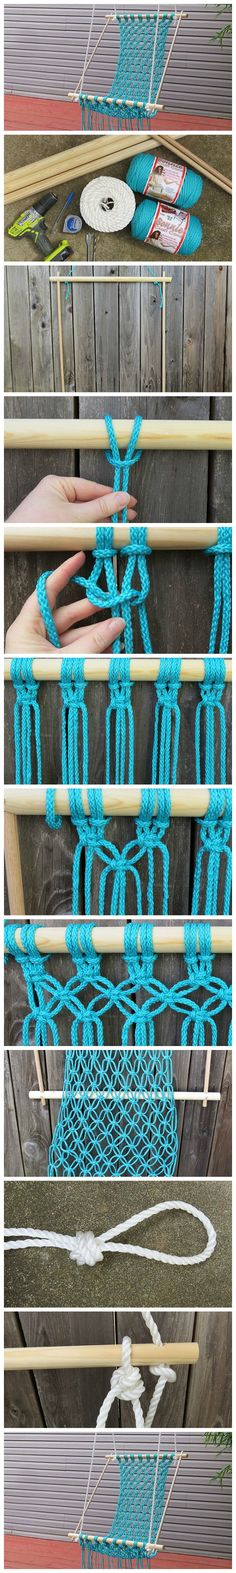 Behov for særligt garn? How To Make A Lovely DIY Macrame Hammock Fun Crafts, Diy And Crafts, Arts And Crafts, Macrame Hanging Chair, Macrame Chairs, Hanging Chairs, Diy Hanging, Hanging Beds, Craft Projects